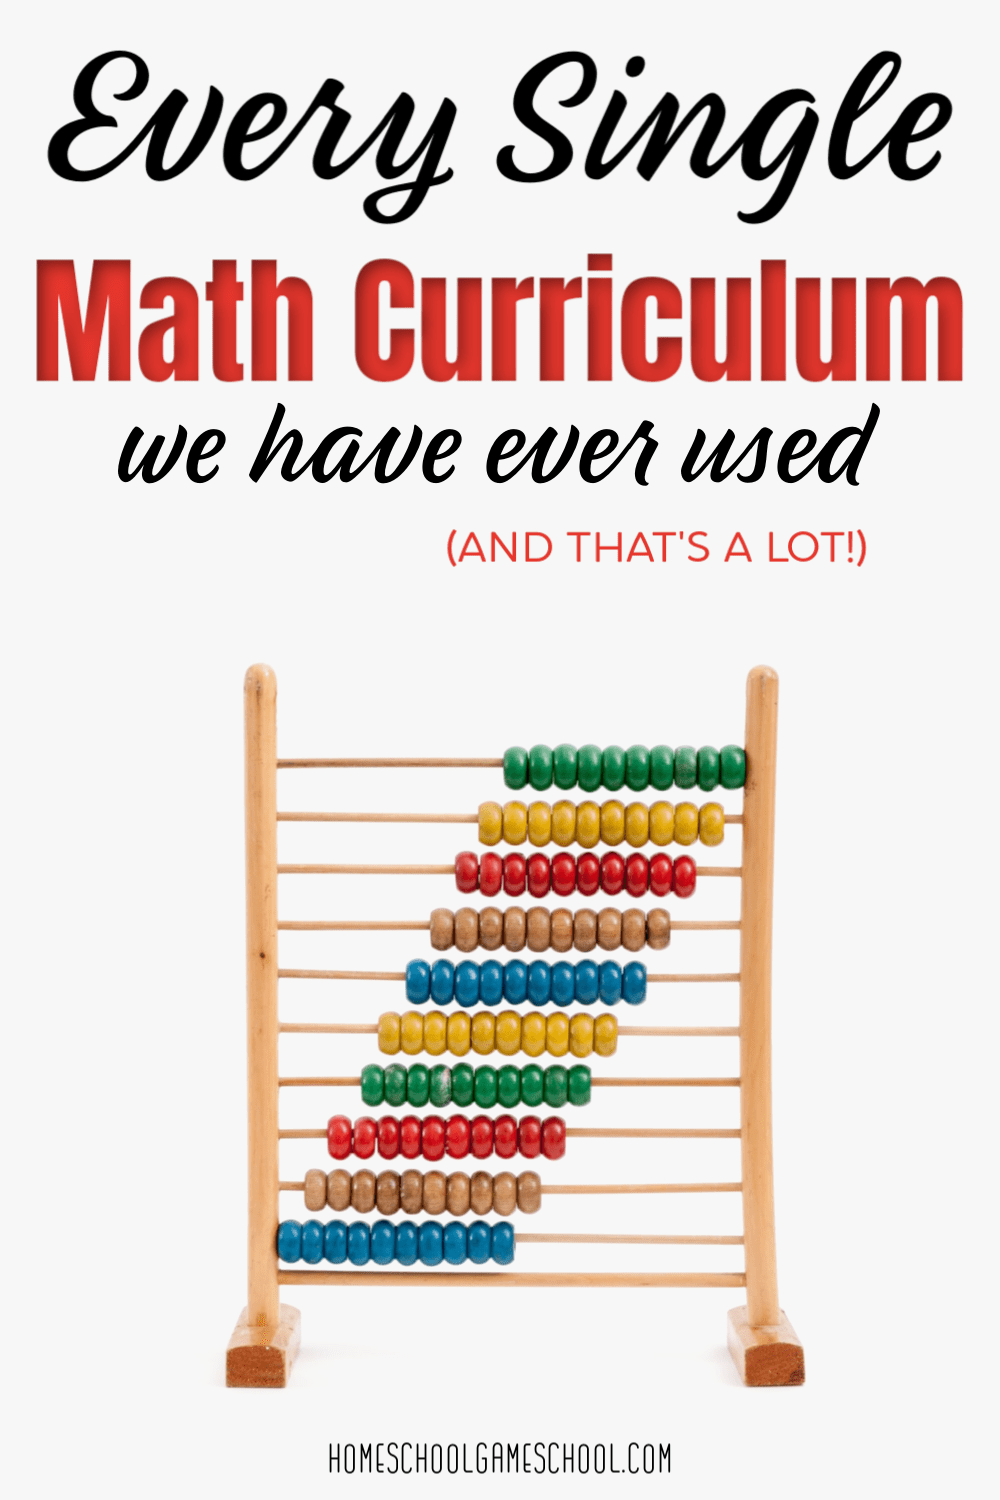 Every Math Curriculum We Have Used